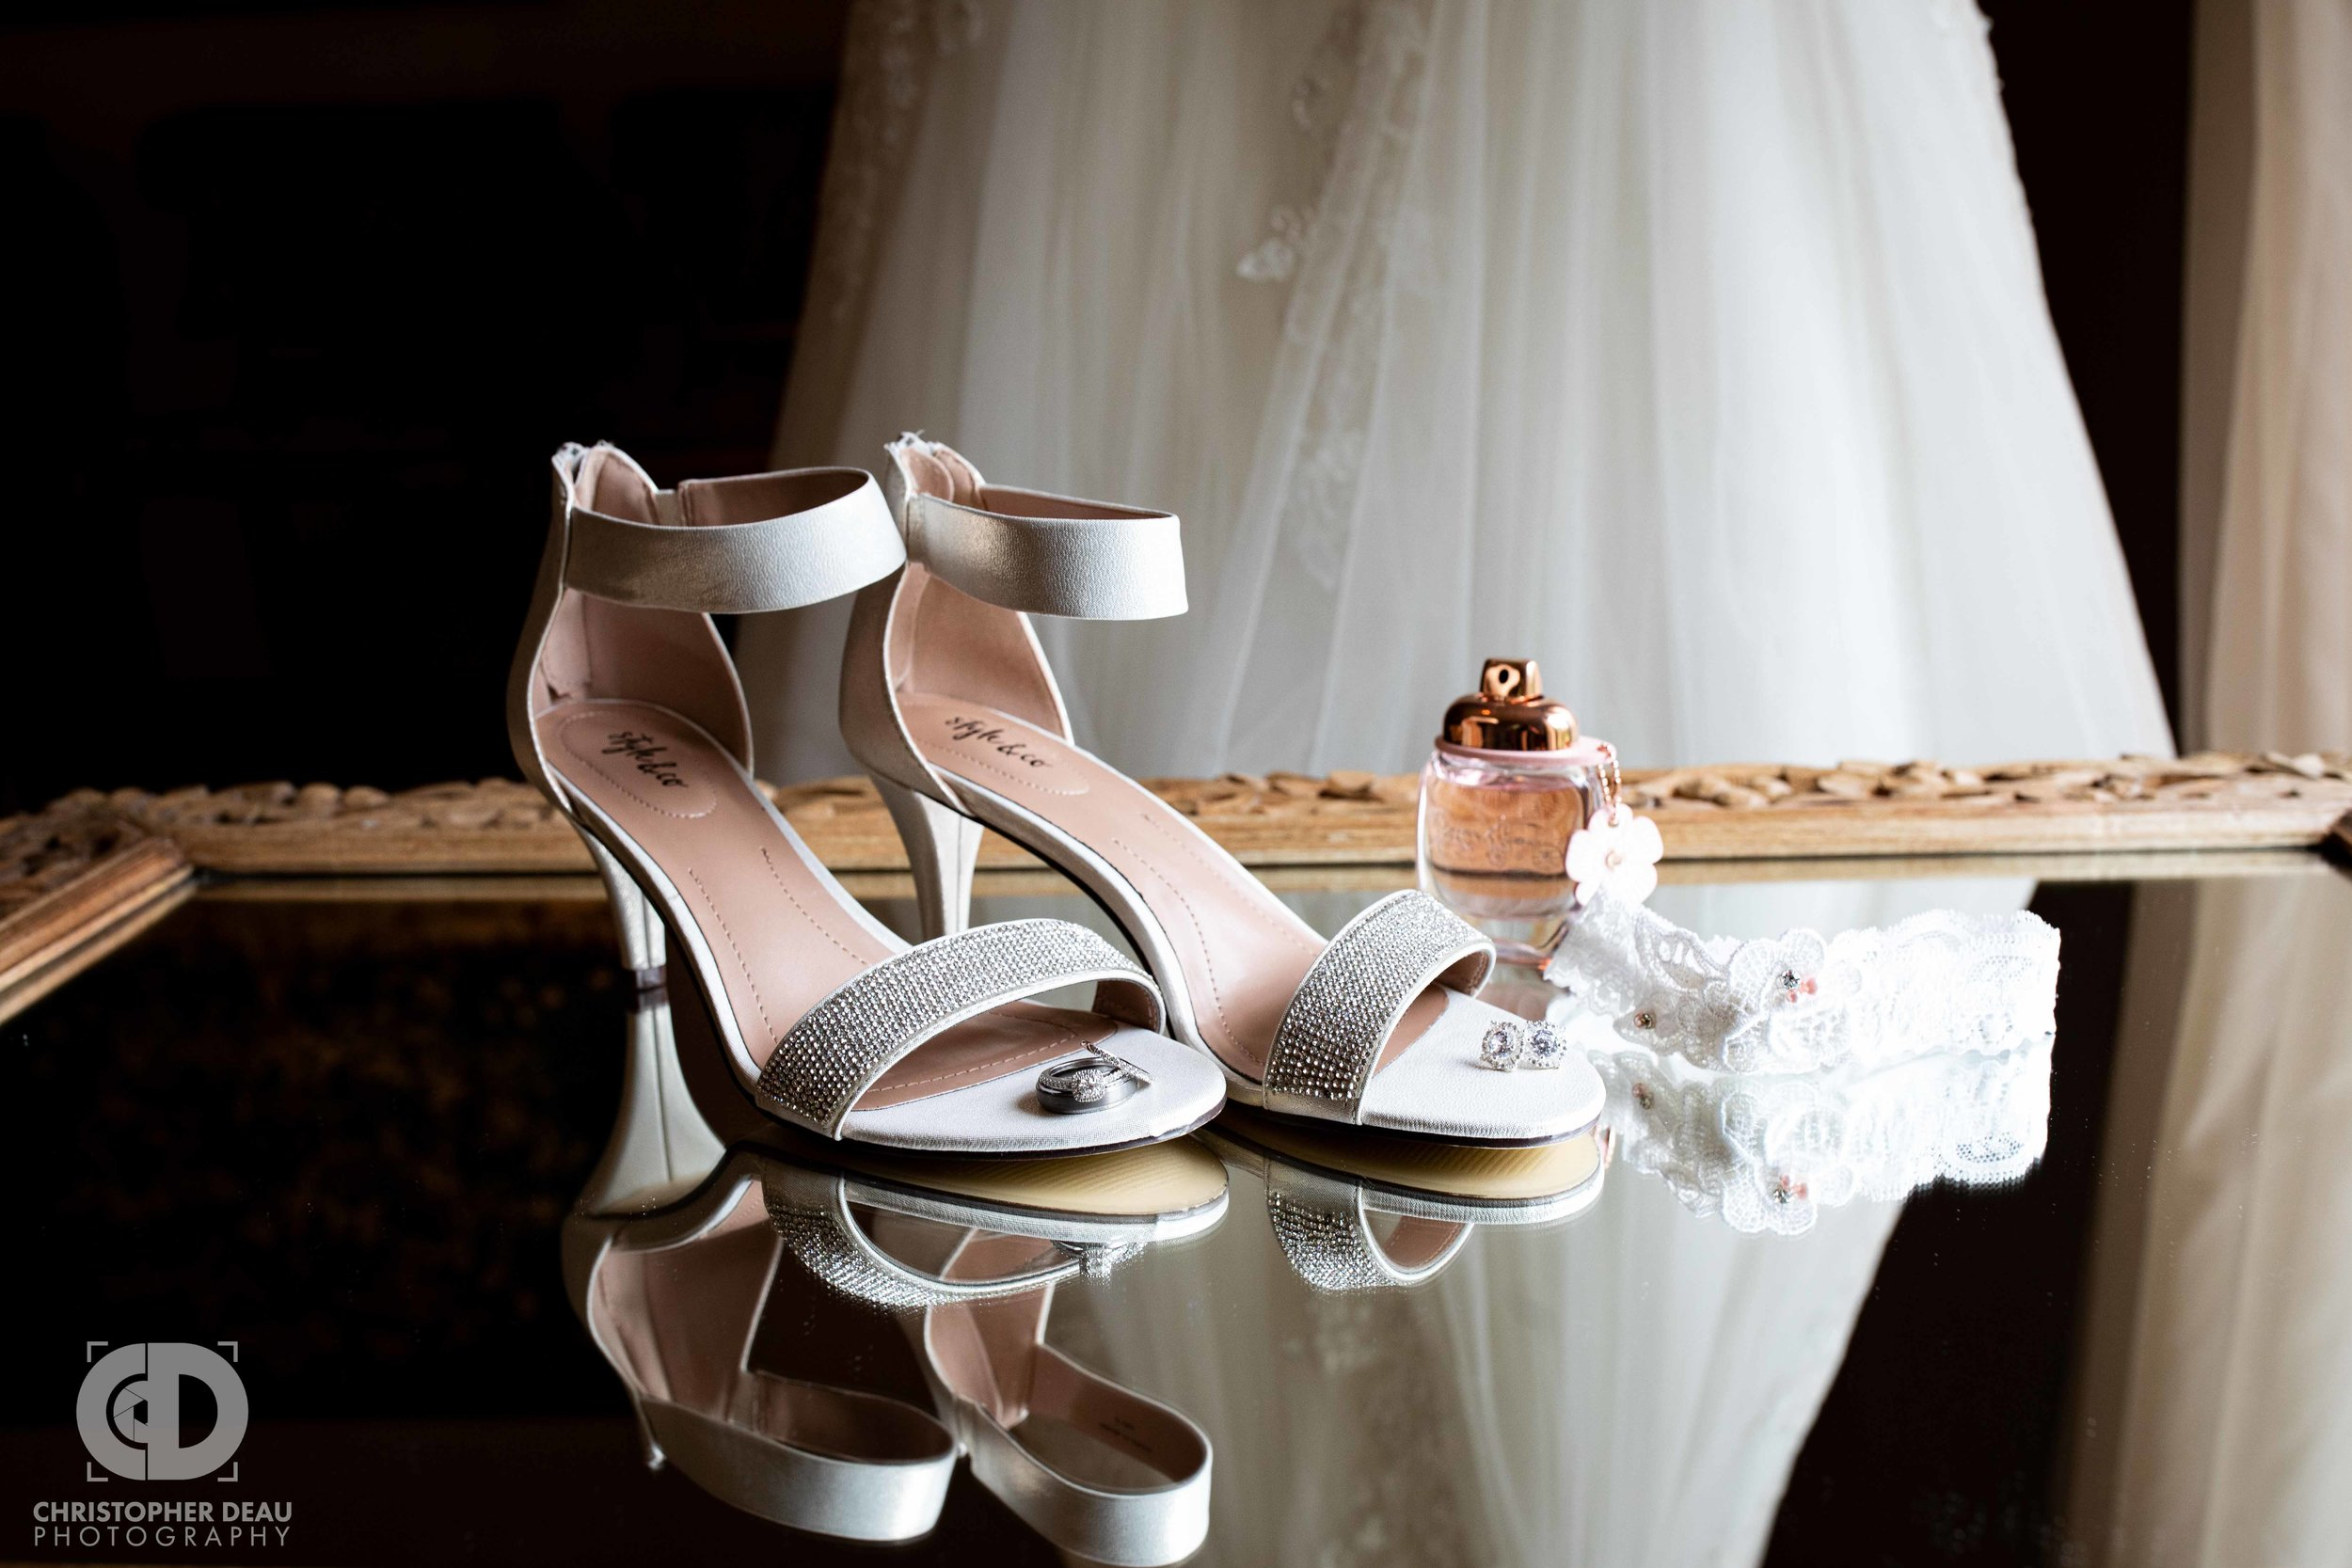 wedding dress, shoes, rings, and other jewelry